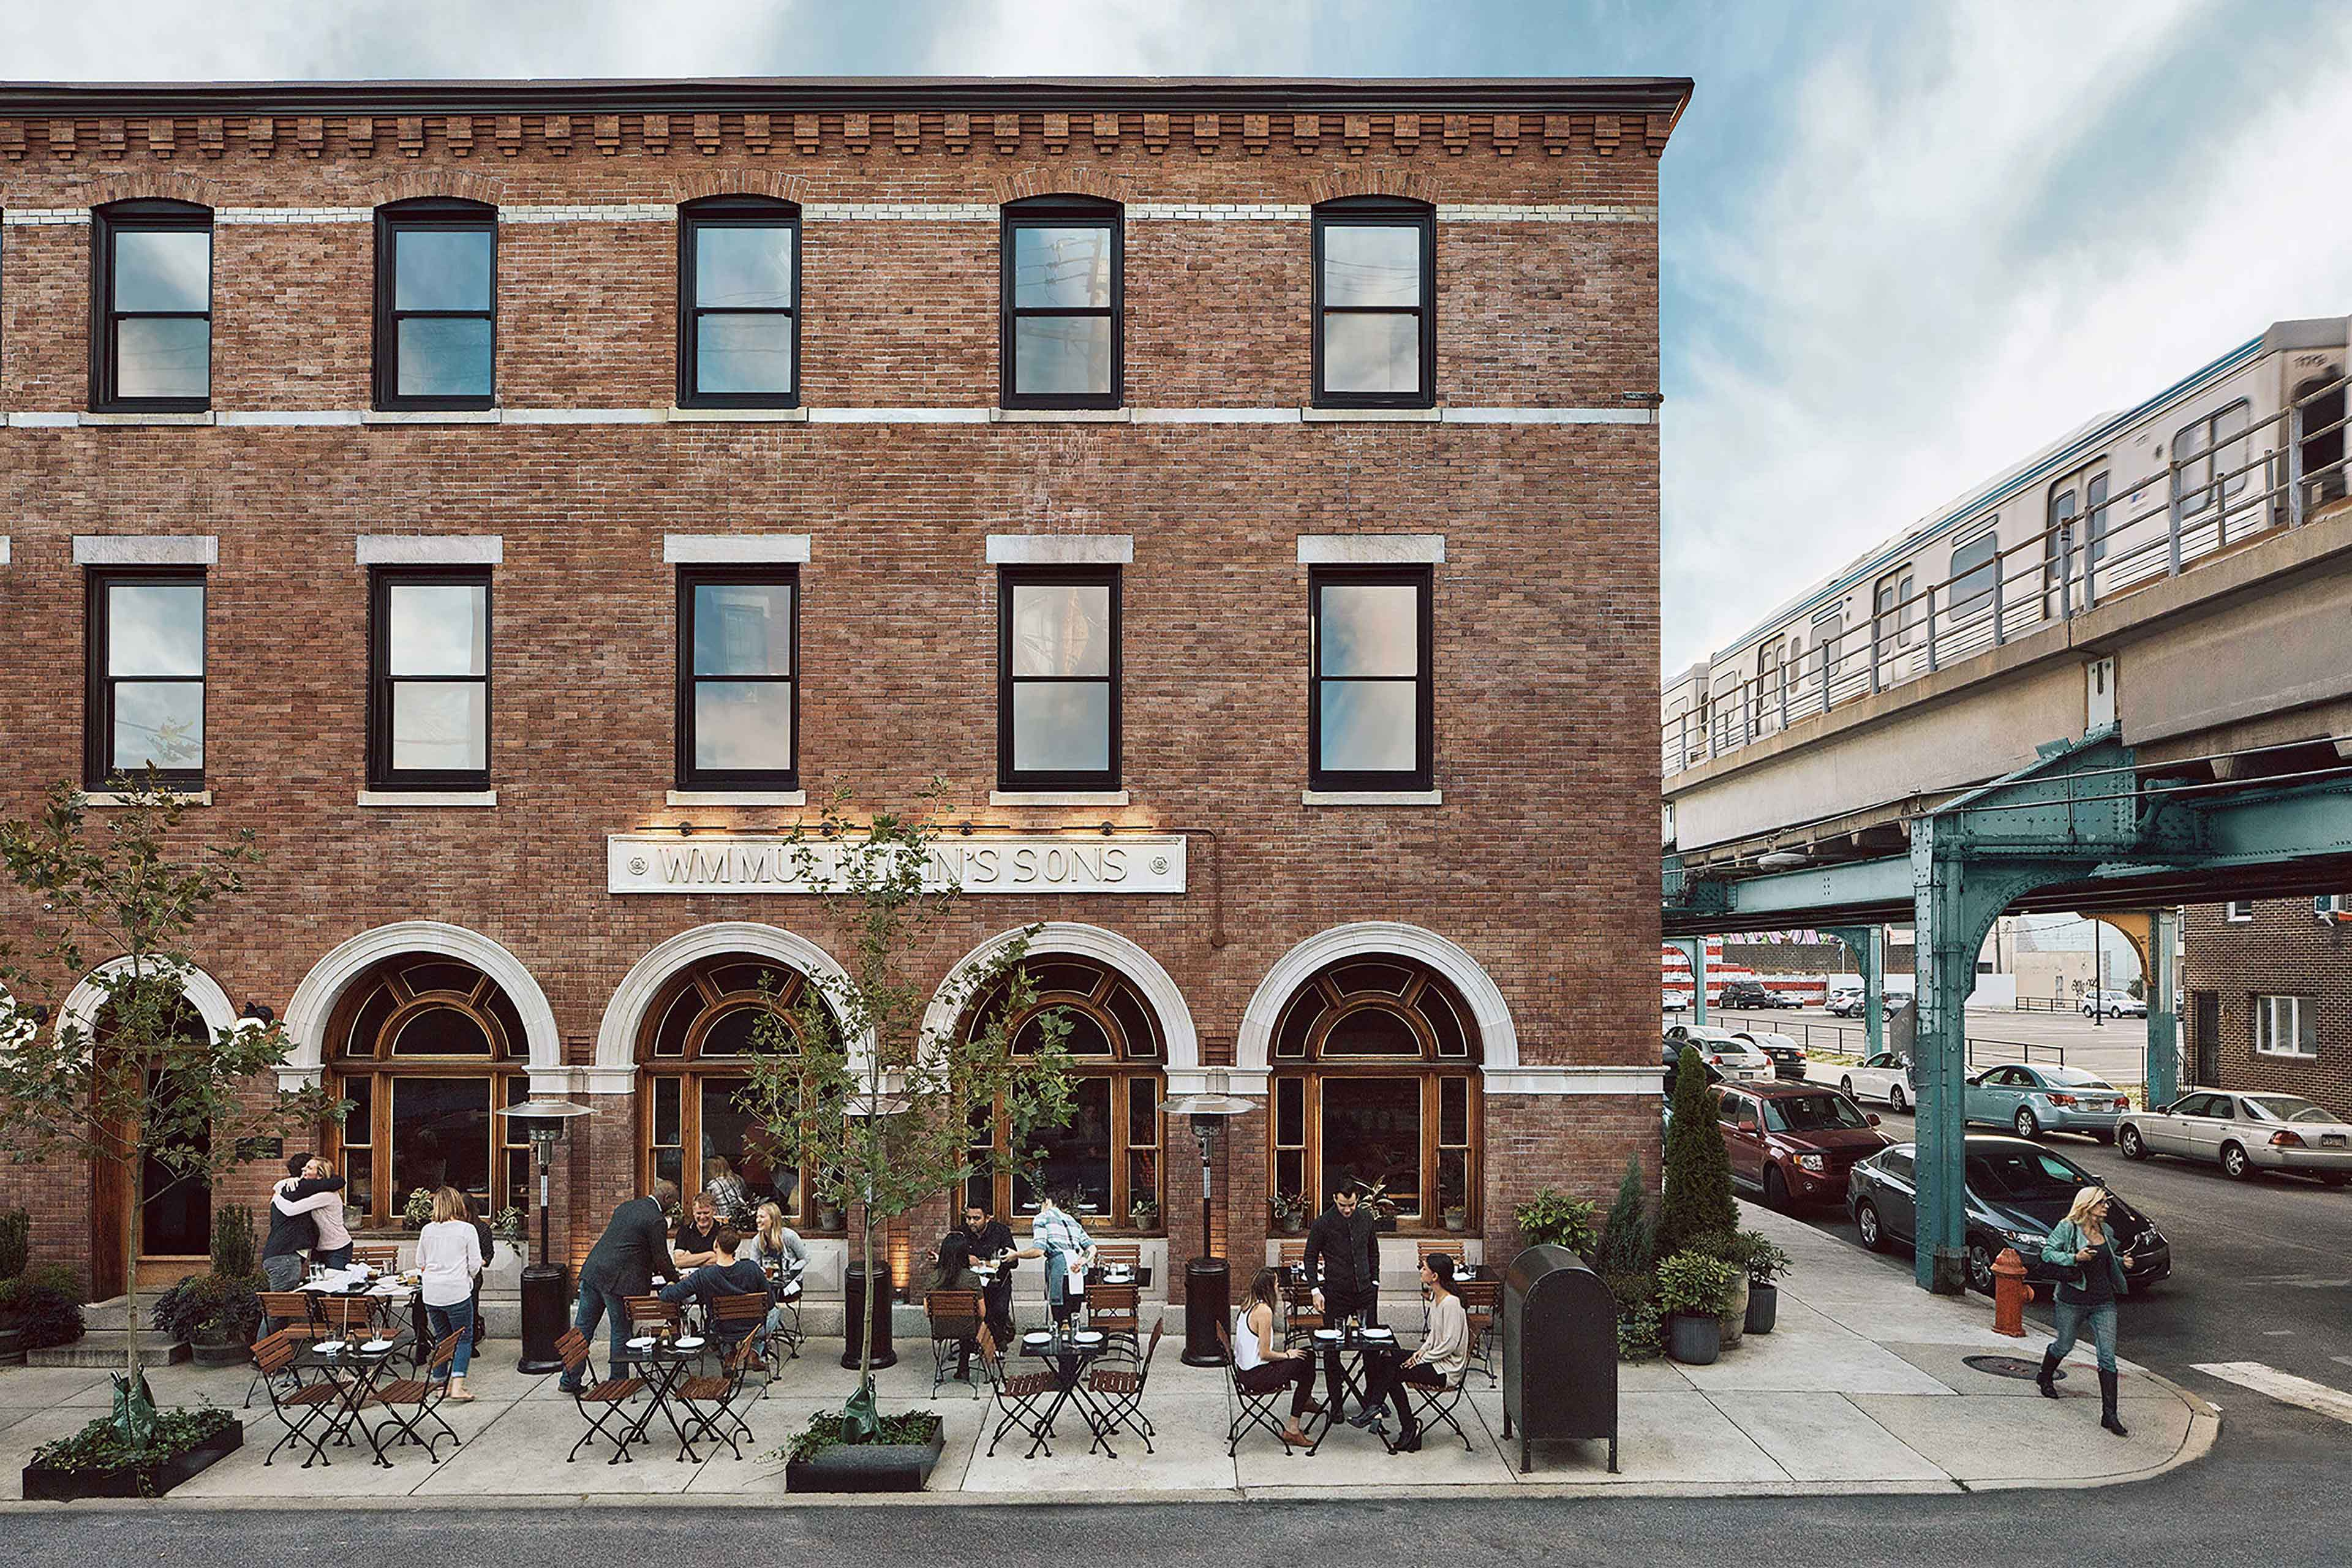 Independent boutique hotels | Wm Mulherin's Sons, Philadelphia | Mr & Mrs Smith